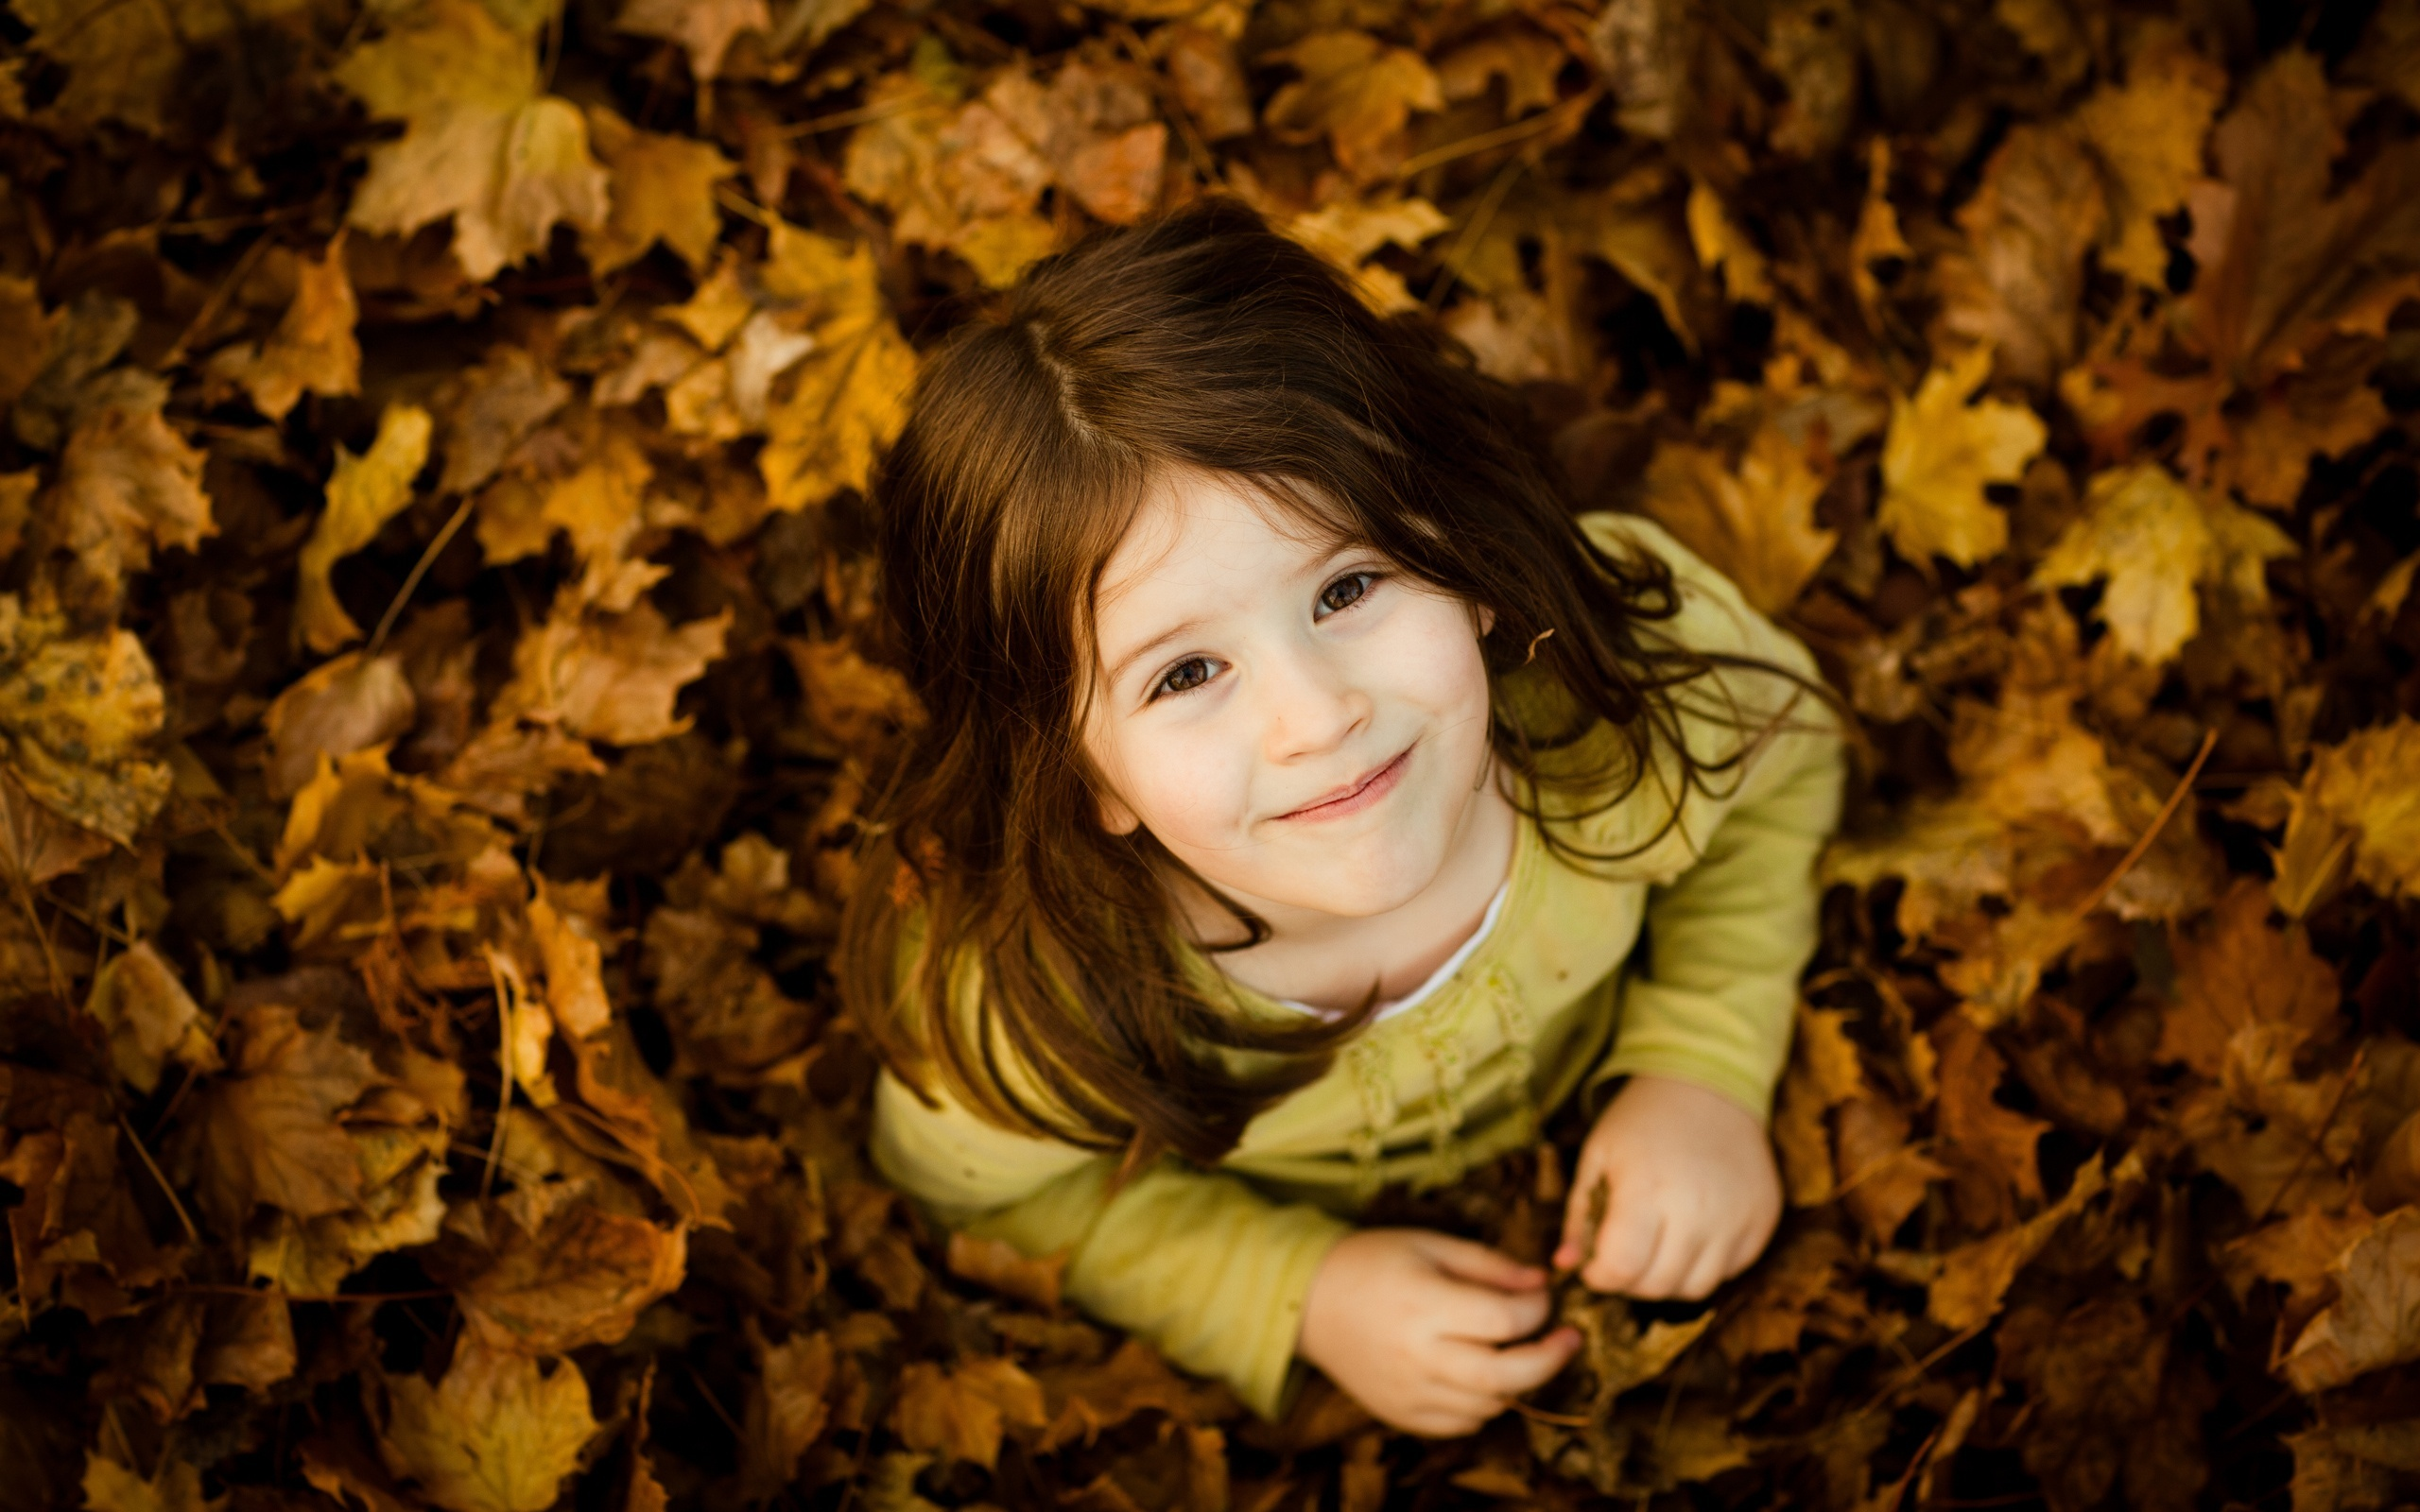 cute girl 2 wallpapers in jpg format for free download